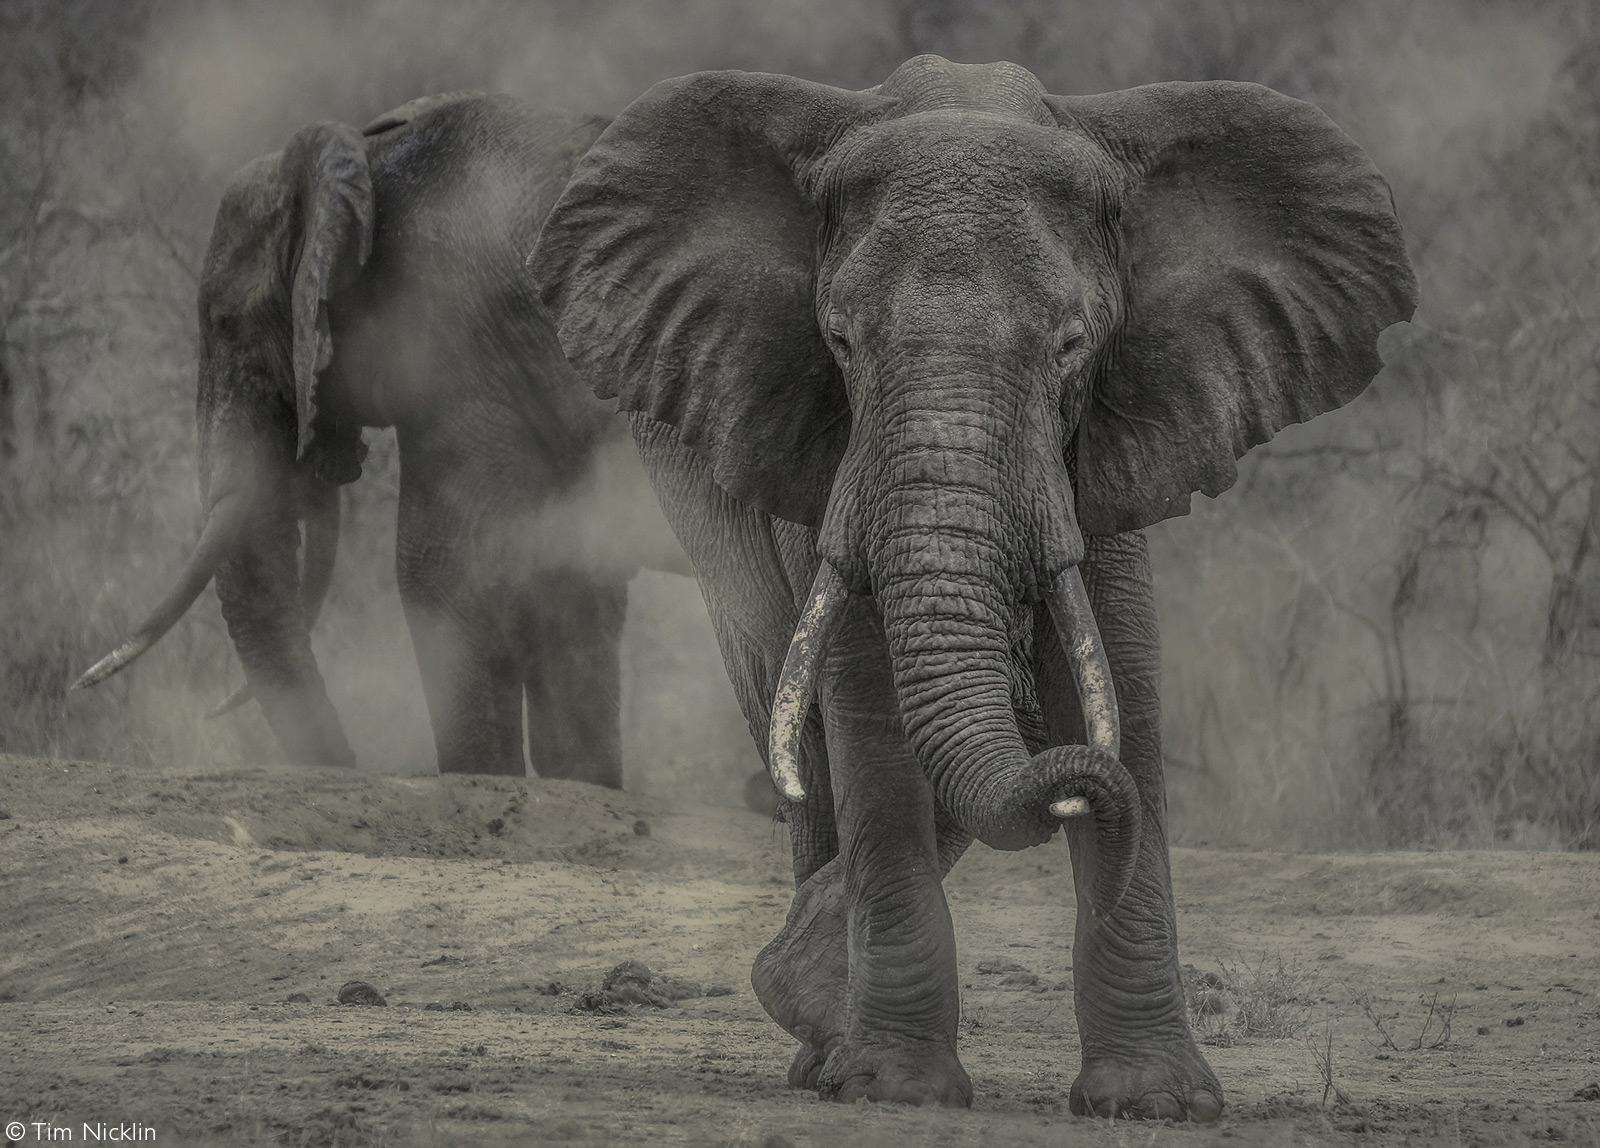 Elephants enjoy a dust bath after their drink at the waterhole. Tsavo West National Park, Kenya © Tim Nicklin